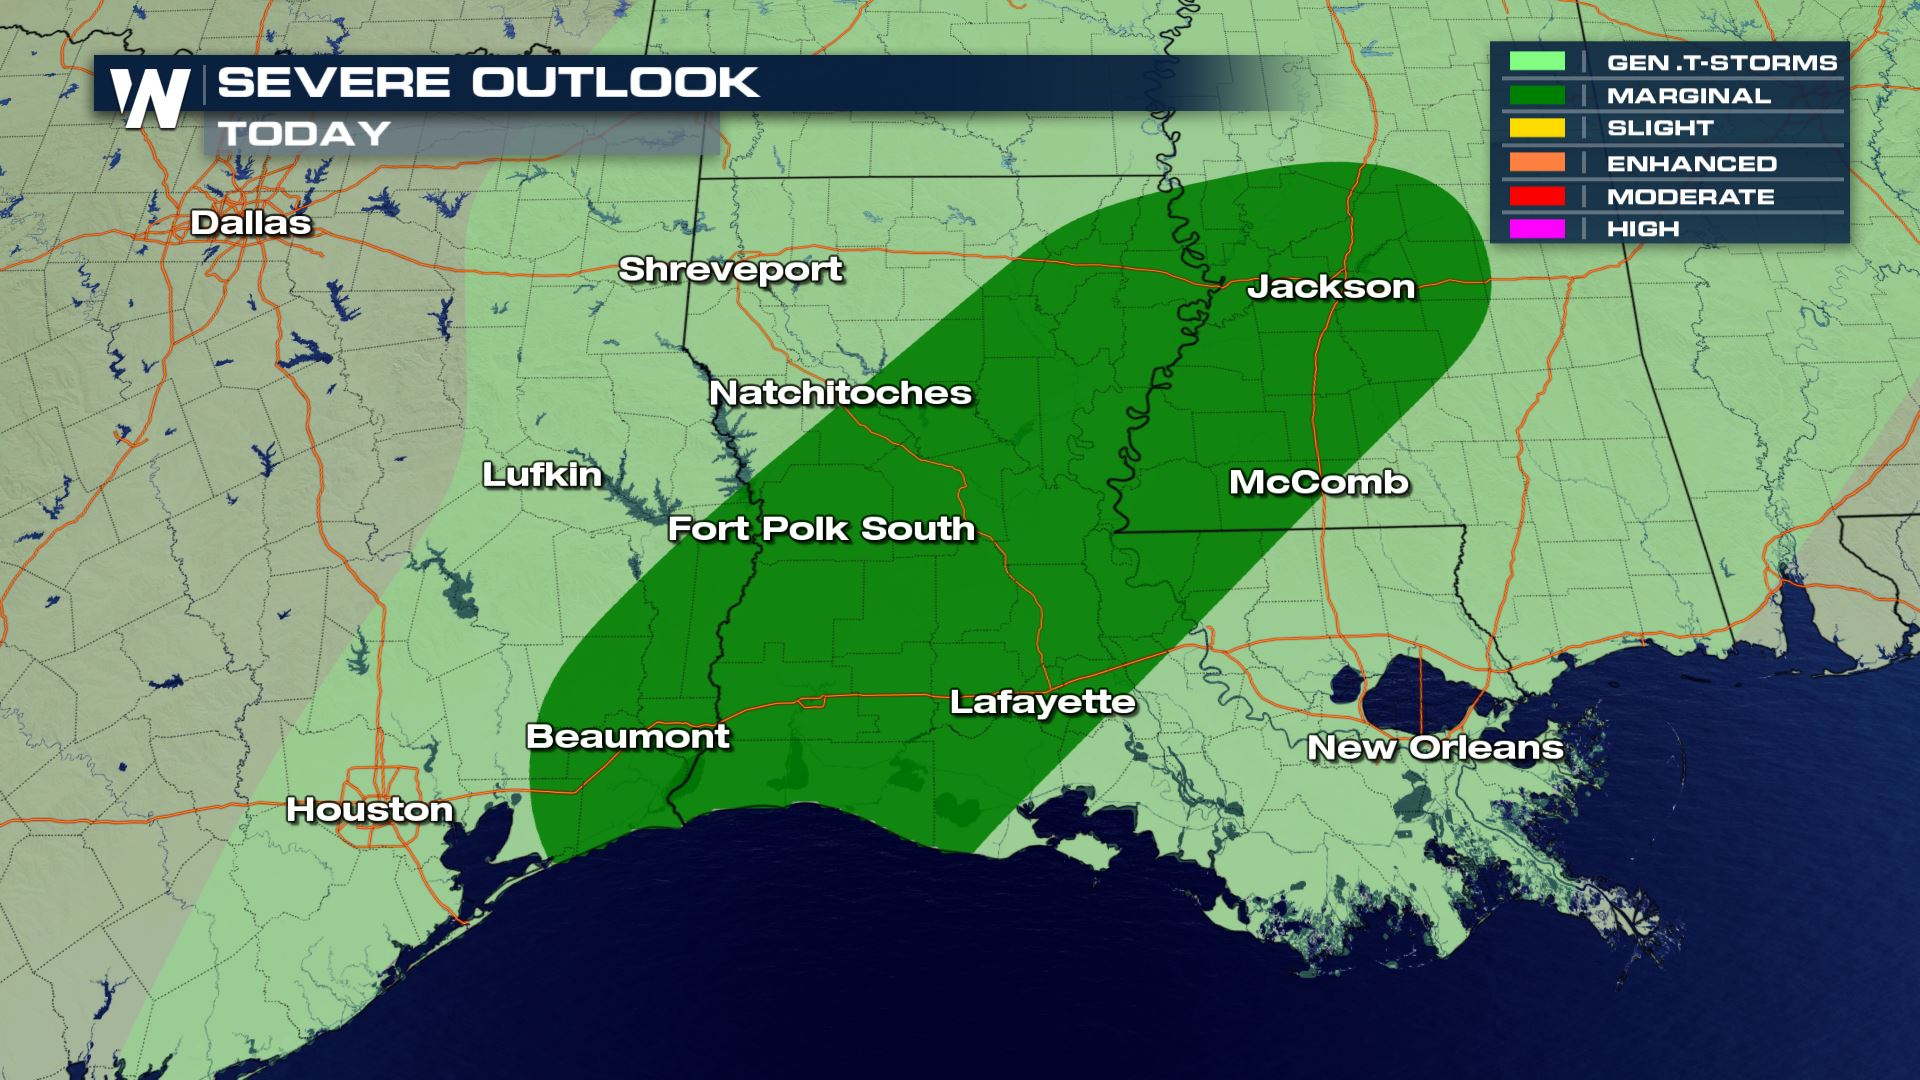 Possible Severe Storms for the South Friday